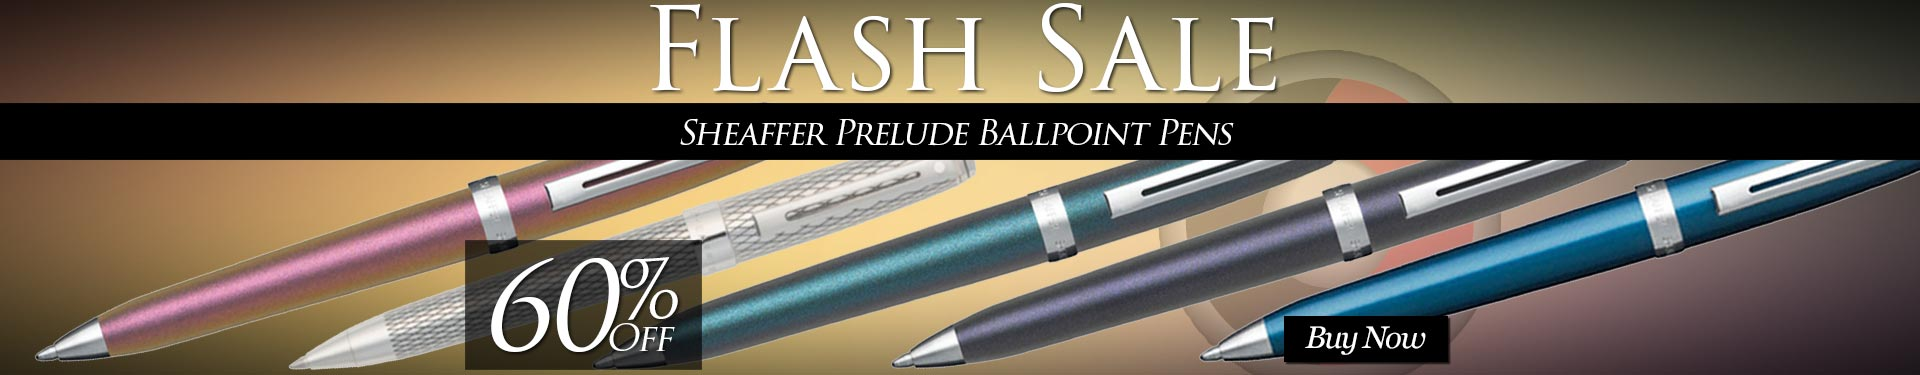 Flash Sale - Save 60% on Sheaffer Prelude